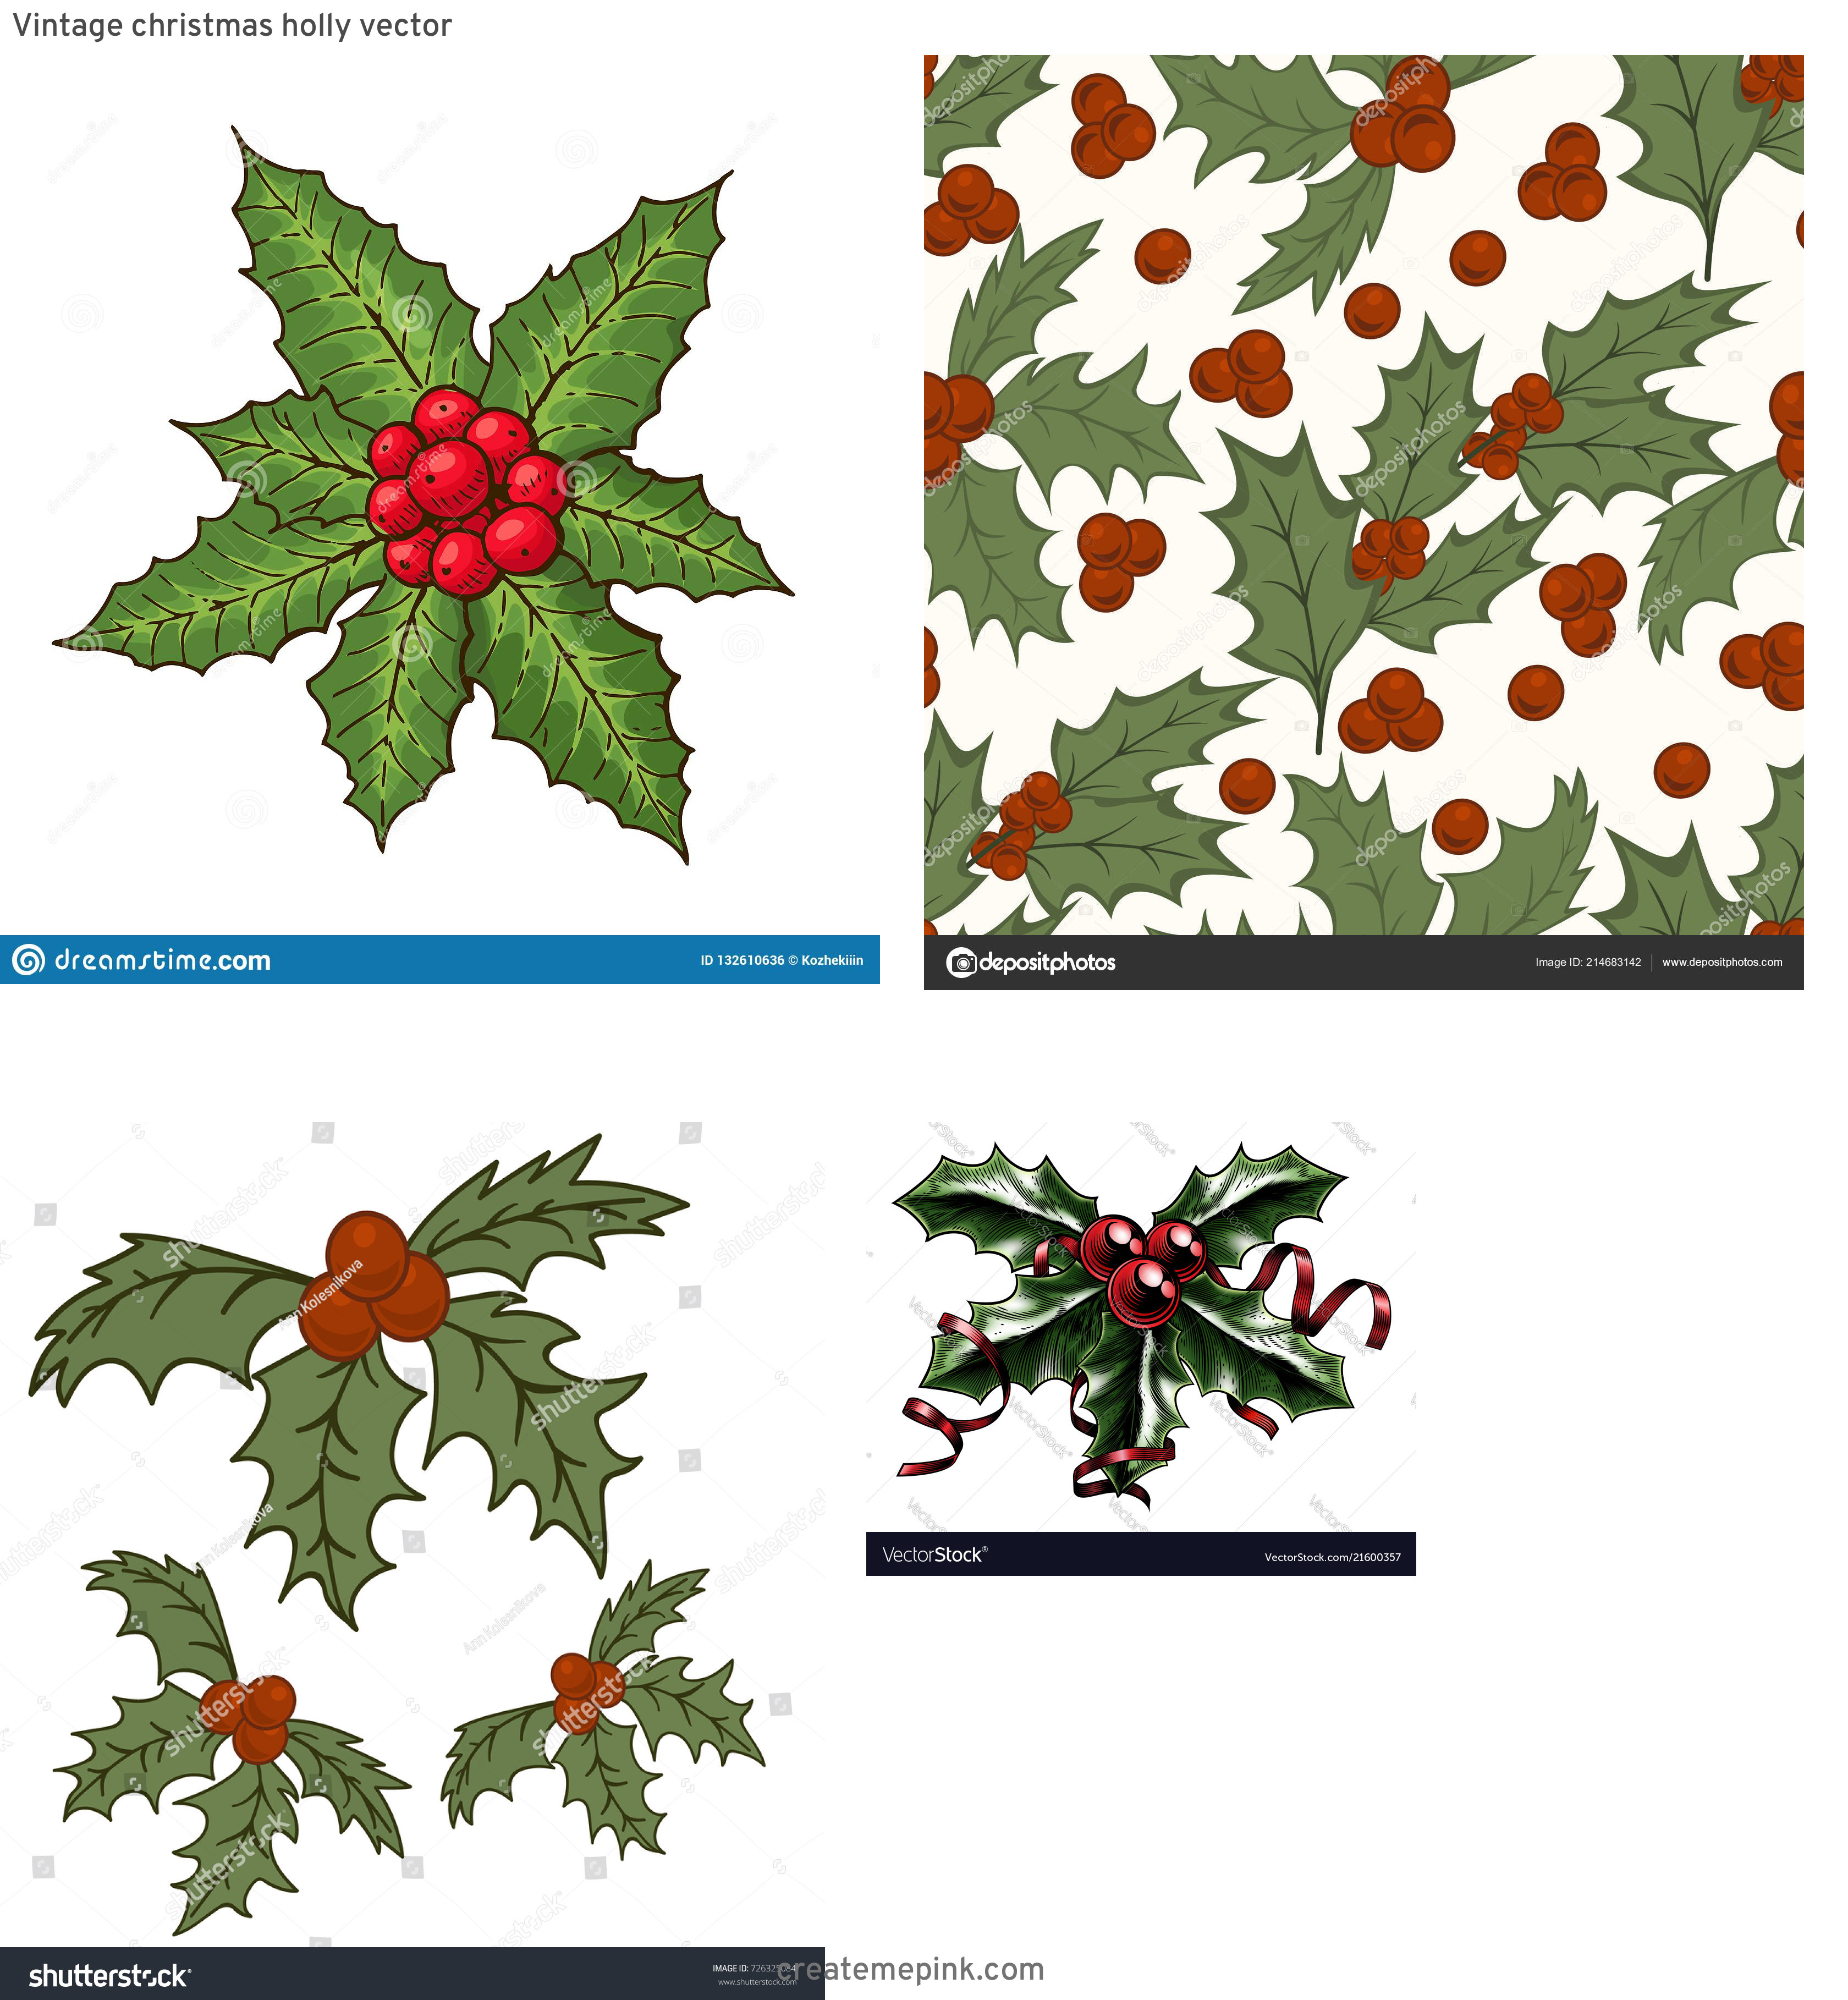 Vintage Look Holly Leaves Vector: Vintage Christmas Holly Vector